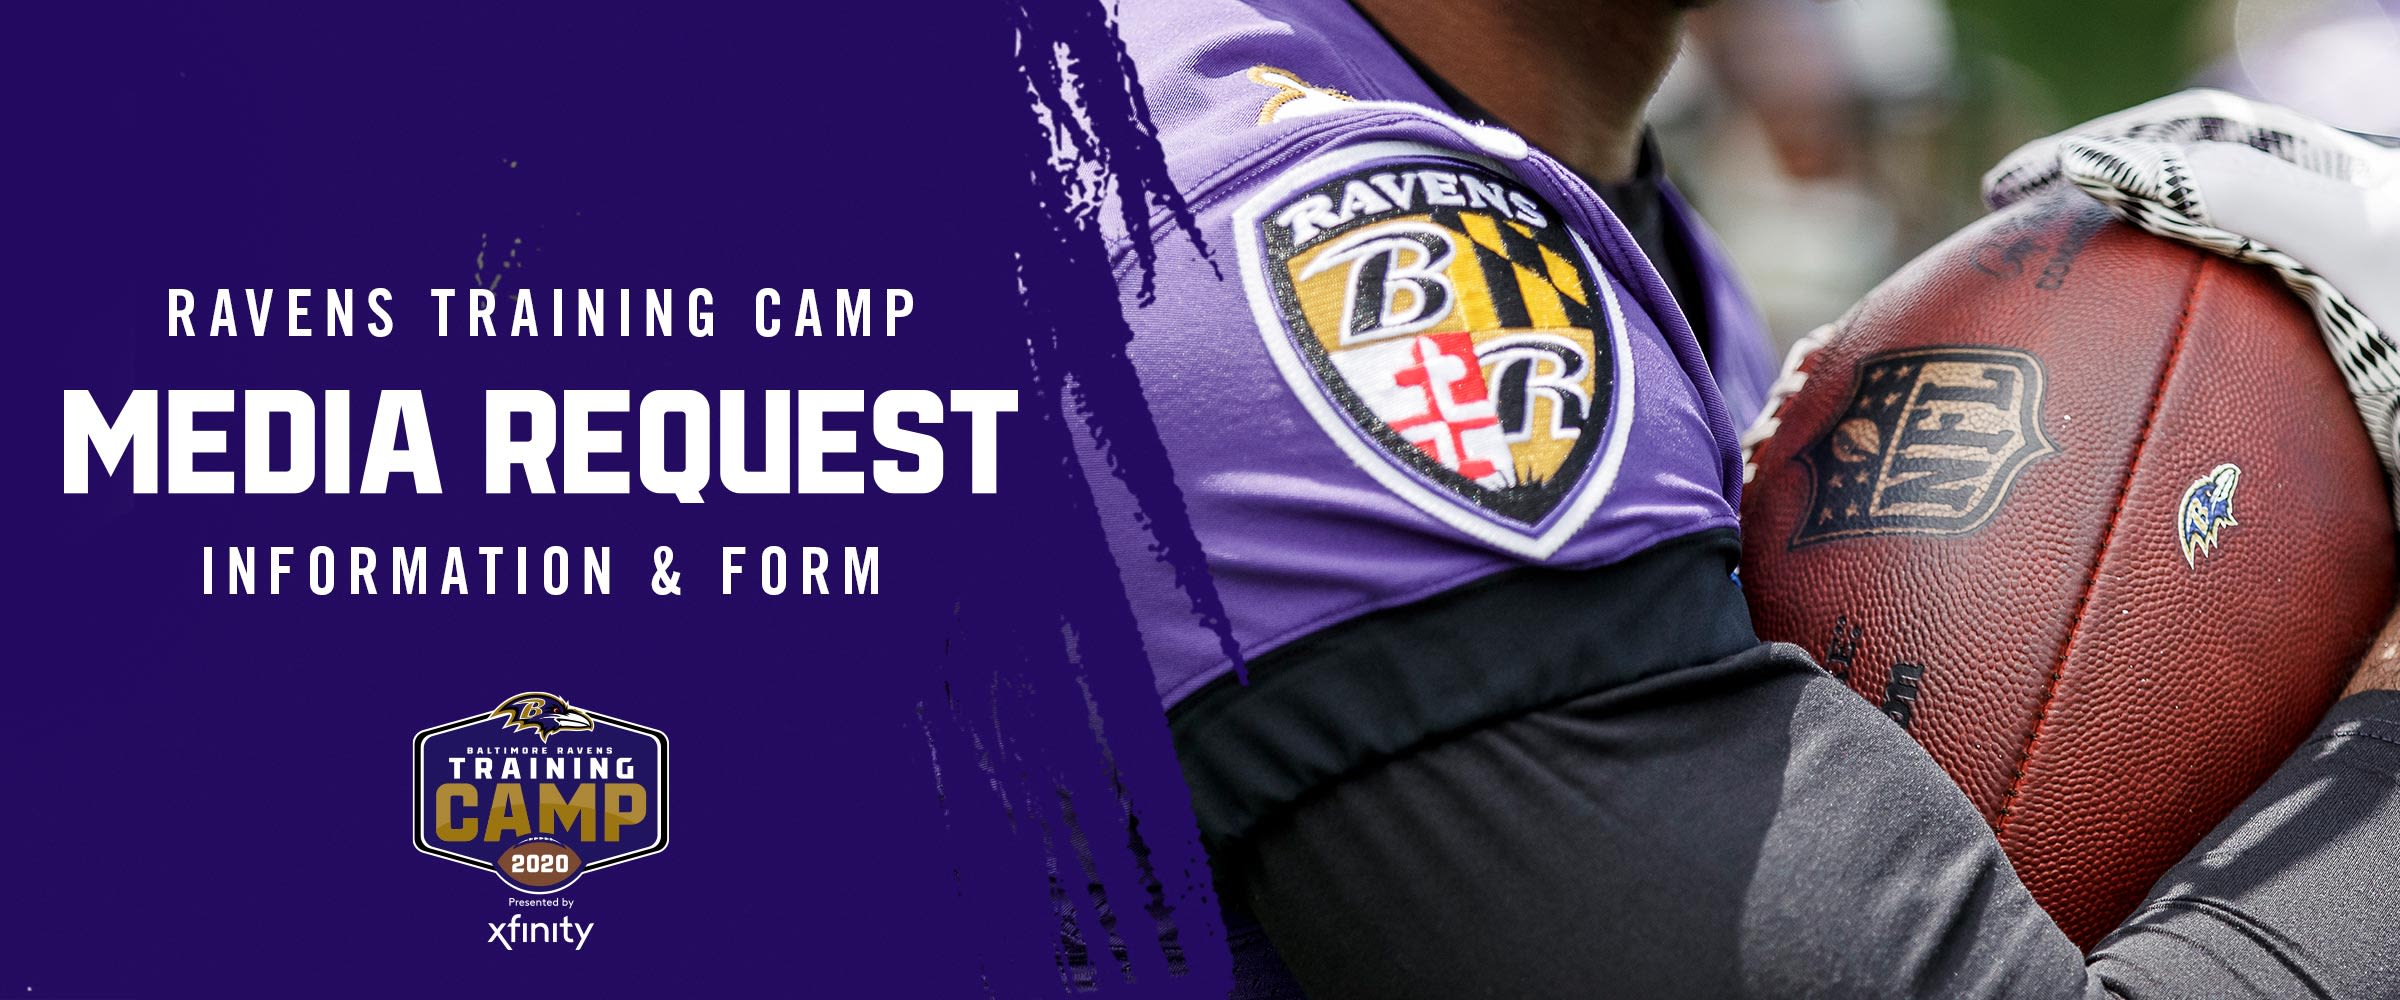 Ravens Training Camp Media Request Information and Form  Ravens Training Camp presented by Xfinity